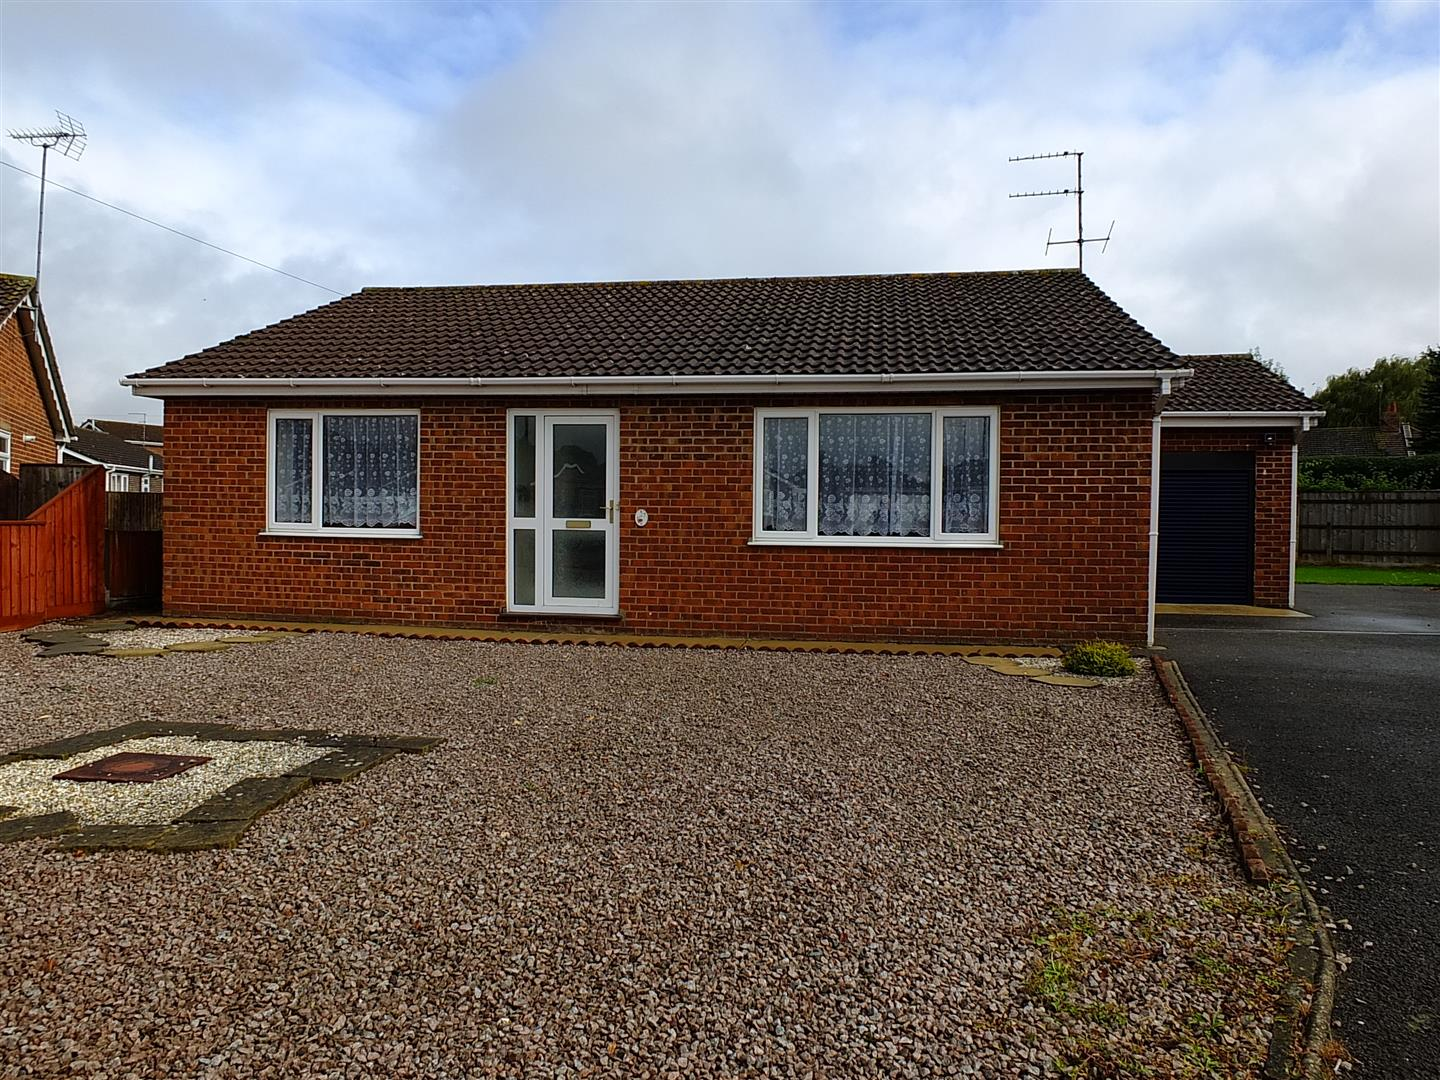 3 bed detached bungalow to rent in Long Sutton Spalding, PE12 9LY, PE12